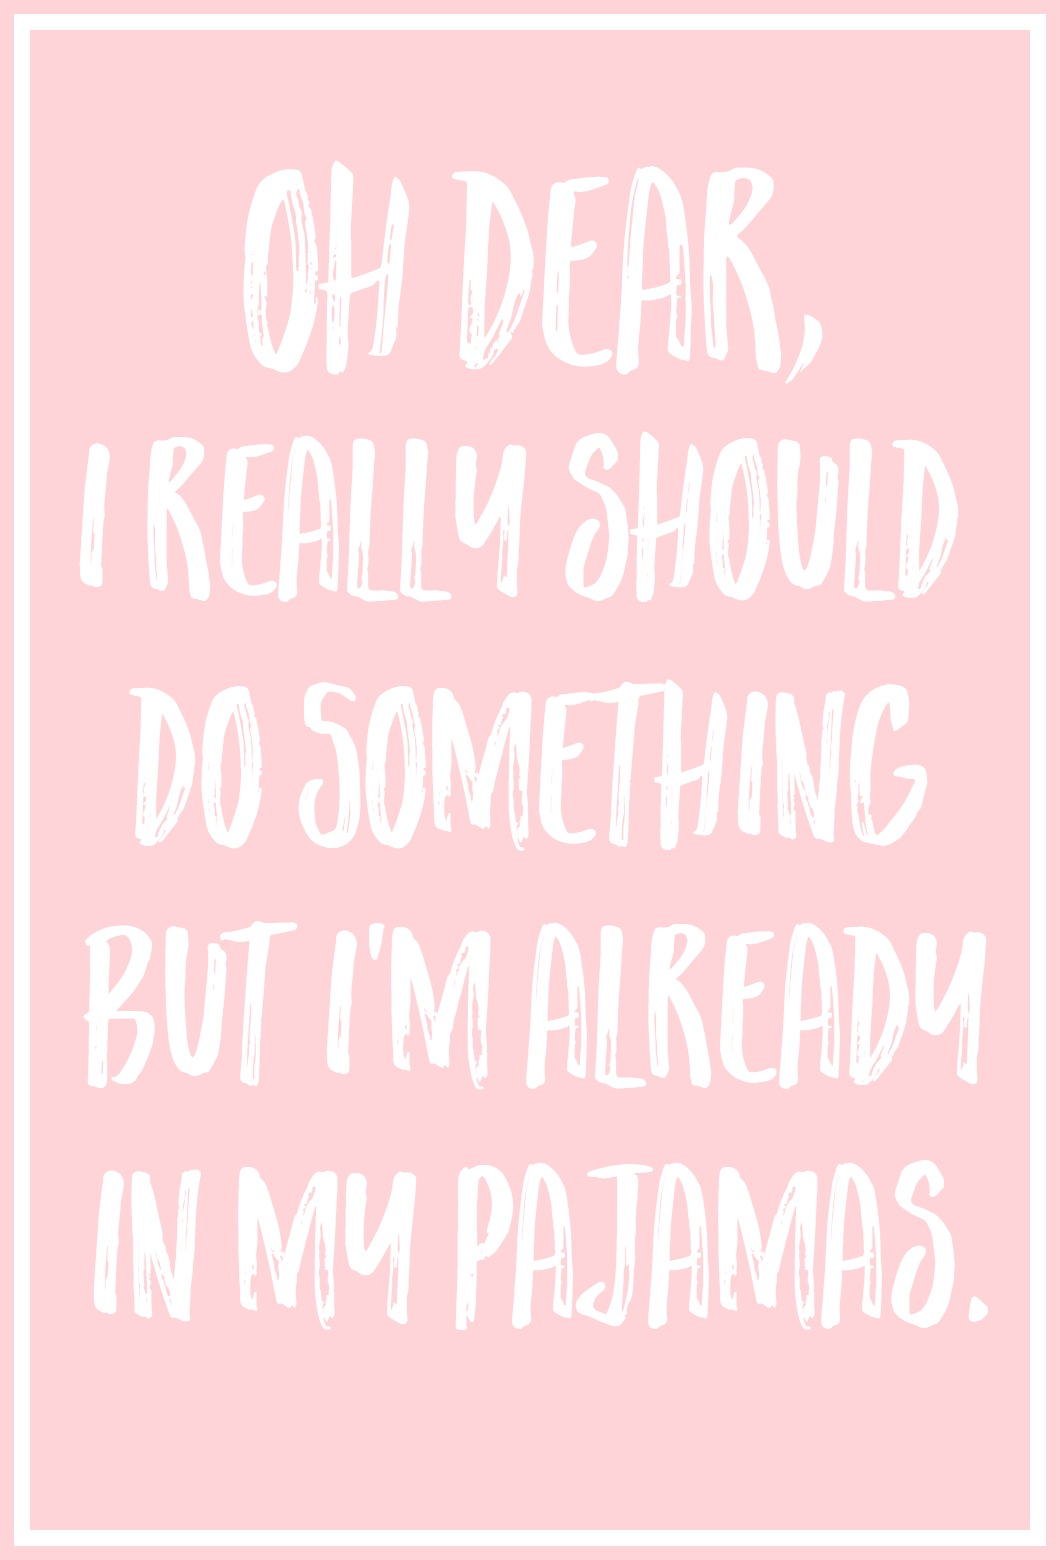 Oh Dear, I Really Should Do Something, But I'm Already In My Pajamas.